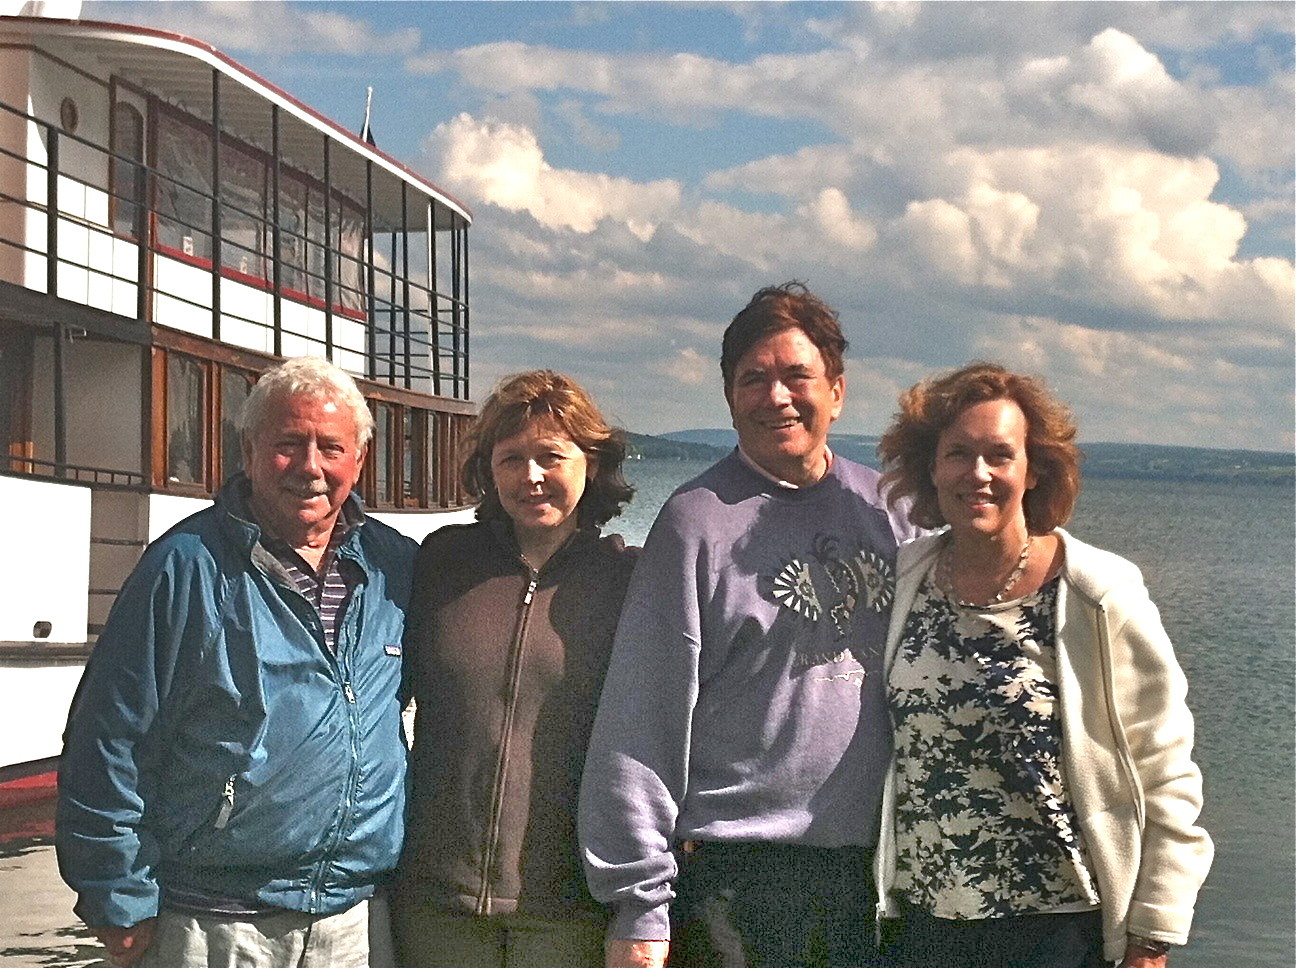 Aug. 2014: Don Fischman, Barbara Lohse, John & Lorraine in town, Skaneateles Lake